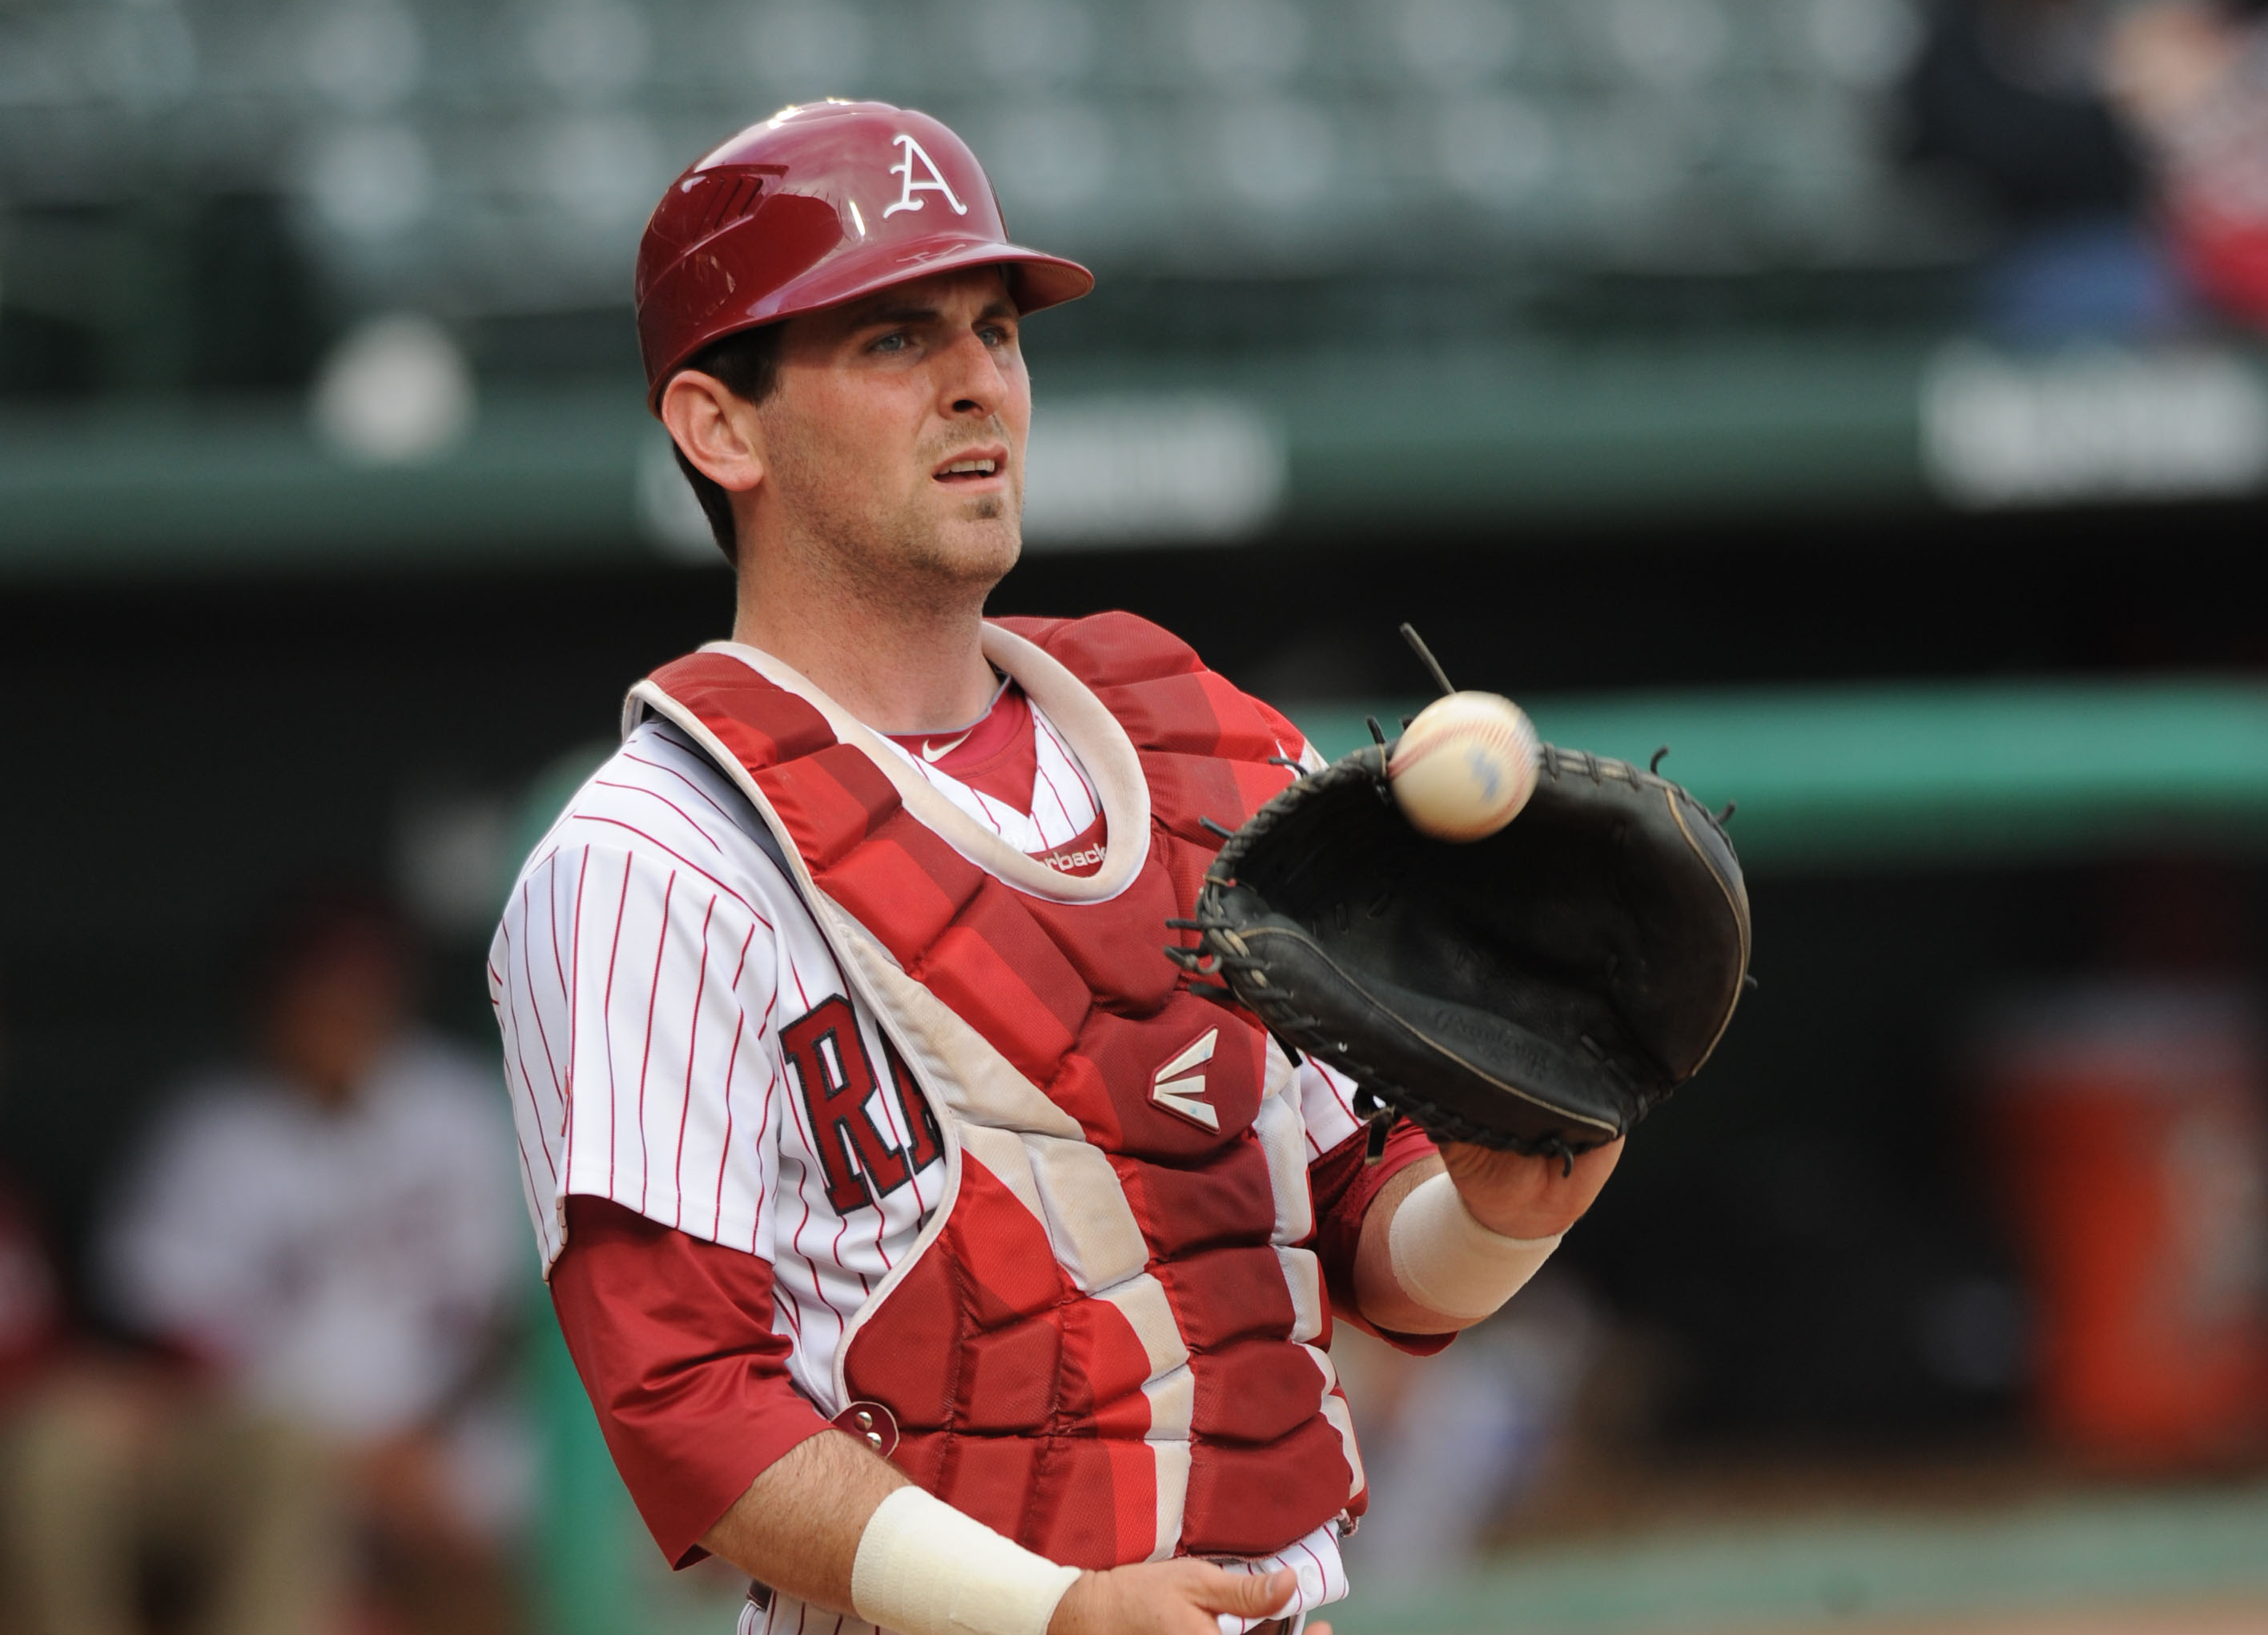 Arkansas scores on play at plate | NWADG